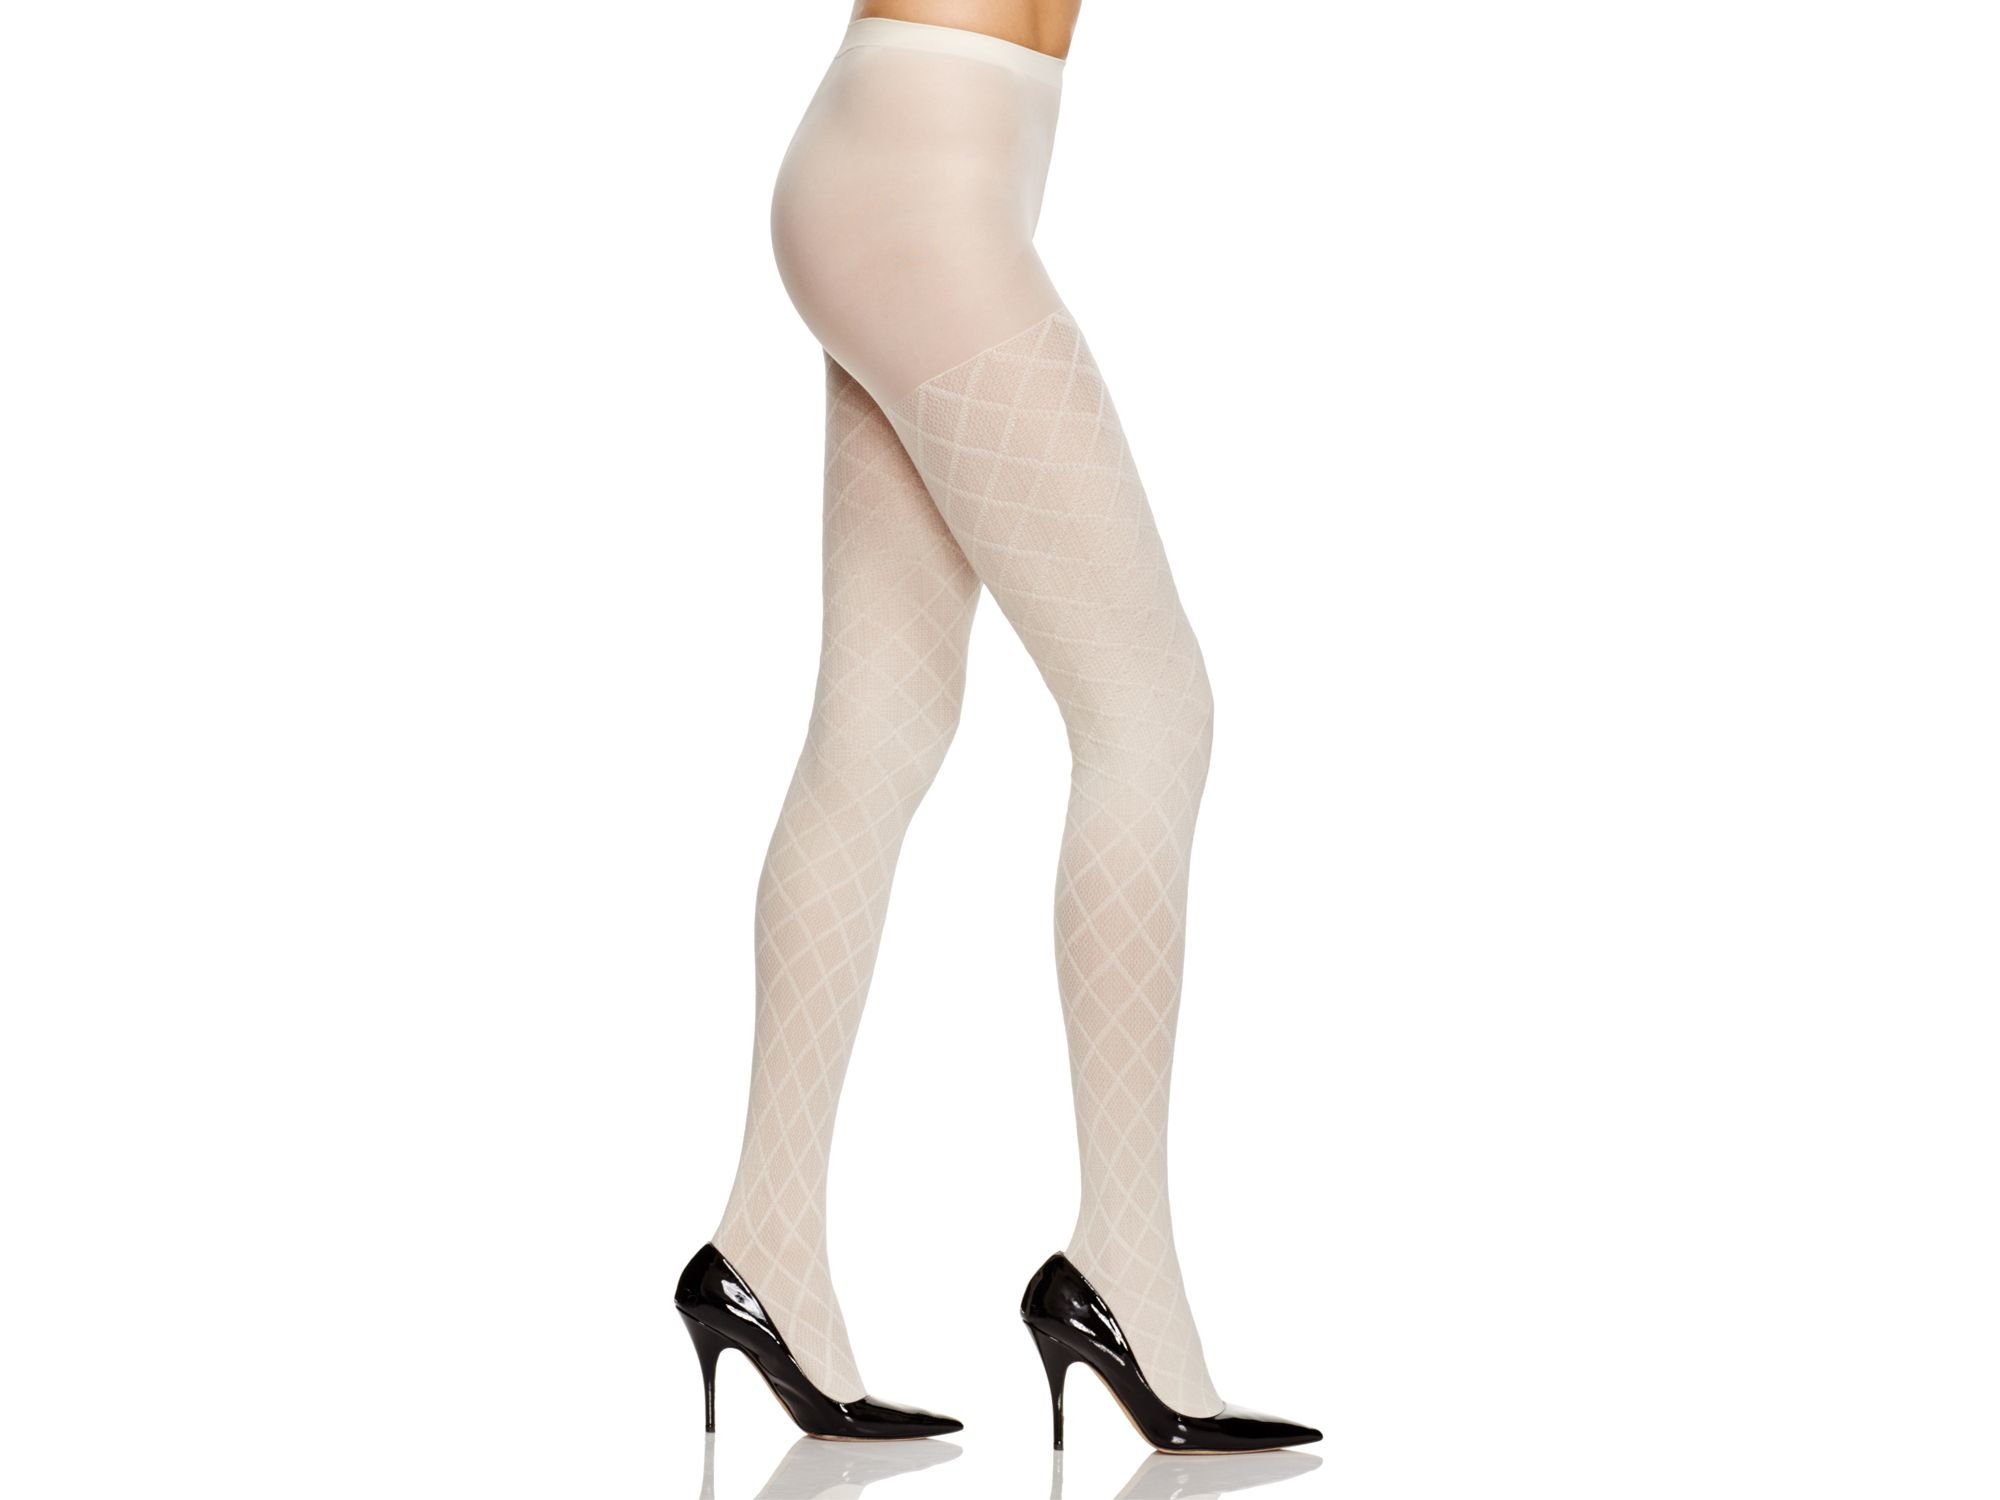 aa1a4e15d56 Hue Diamond Texture Control Top Tights in White - Lyst